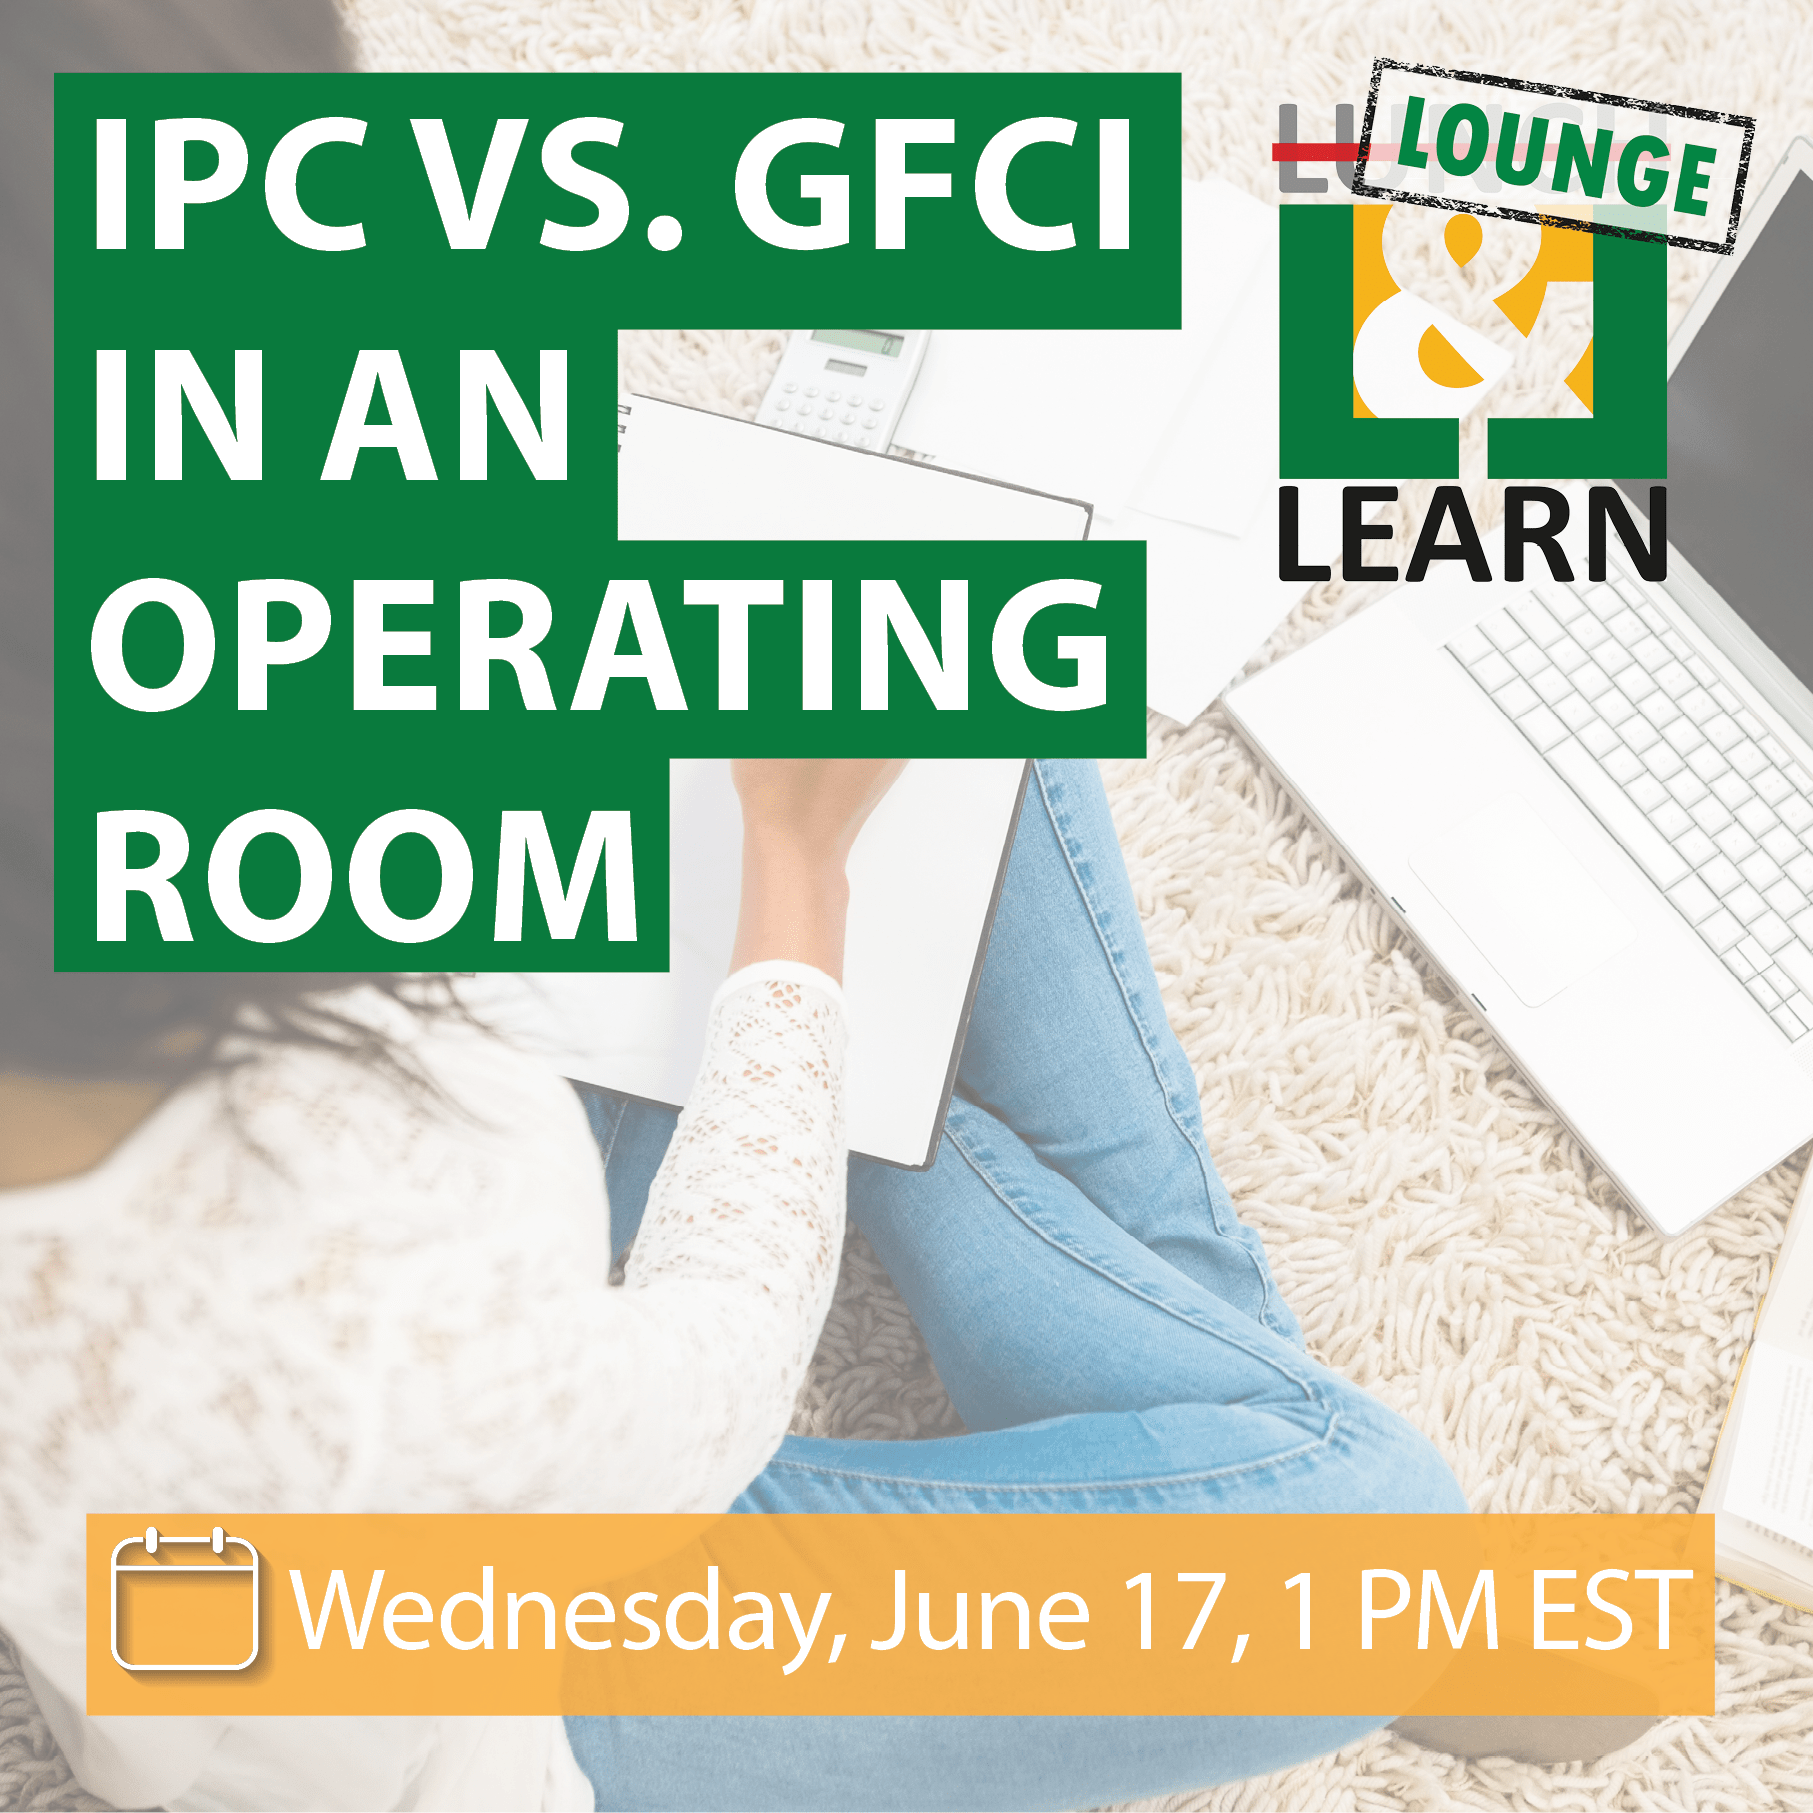 Lounge & Learn: IPC vs. GFCI in an Operating Room